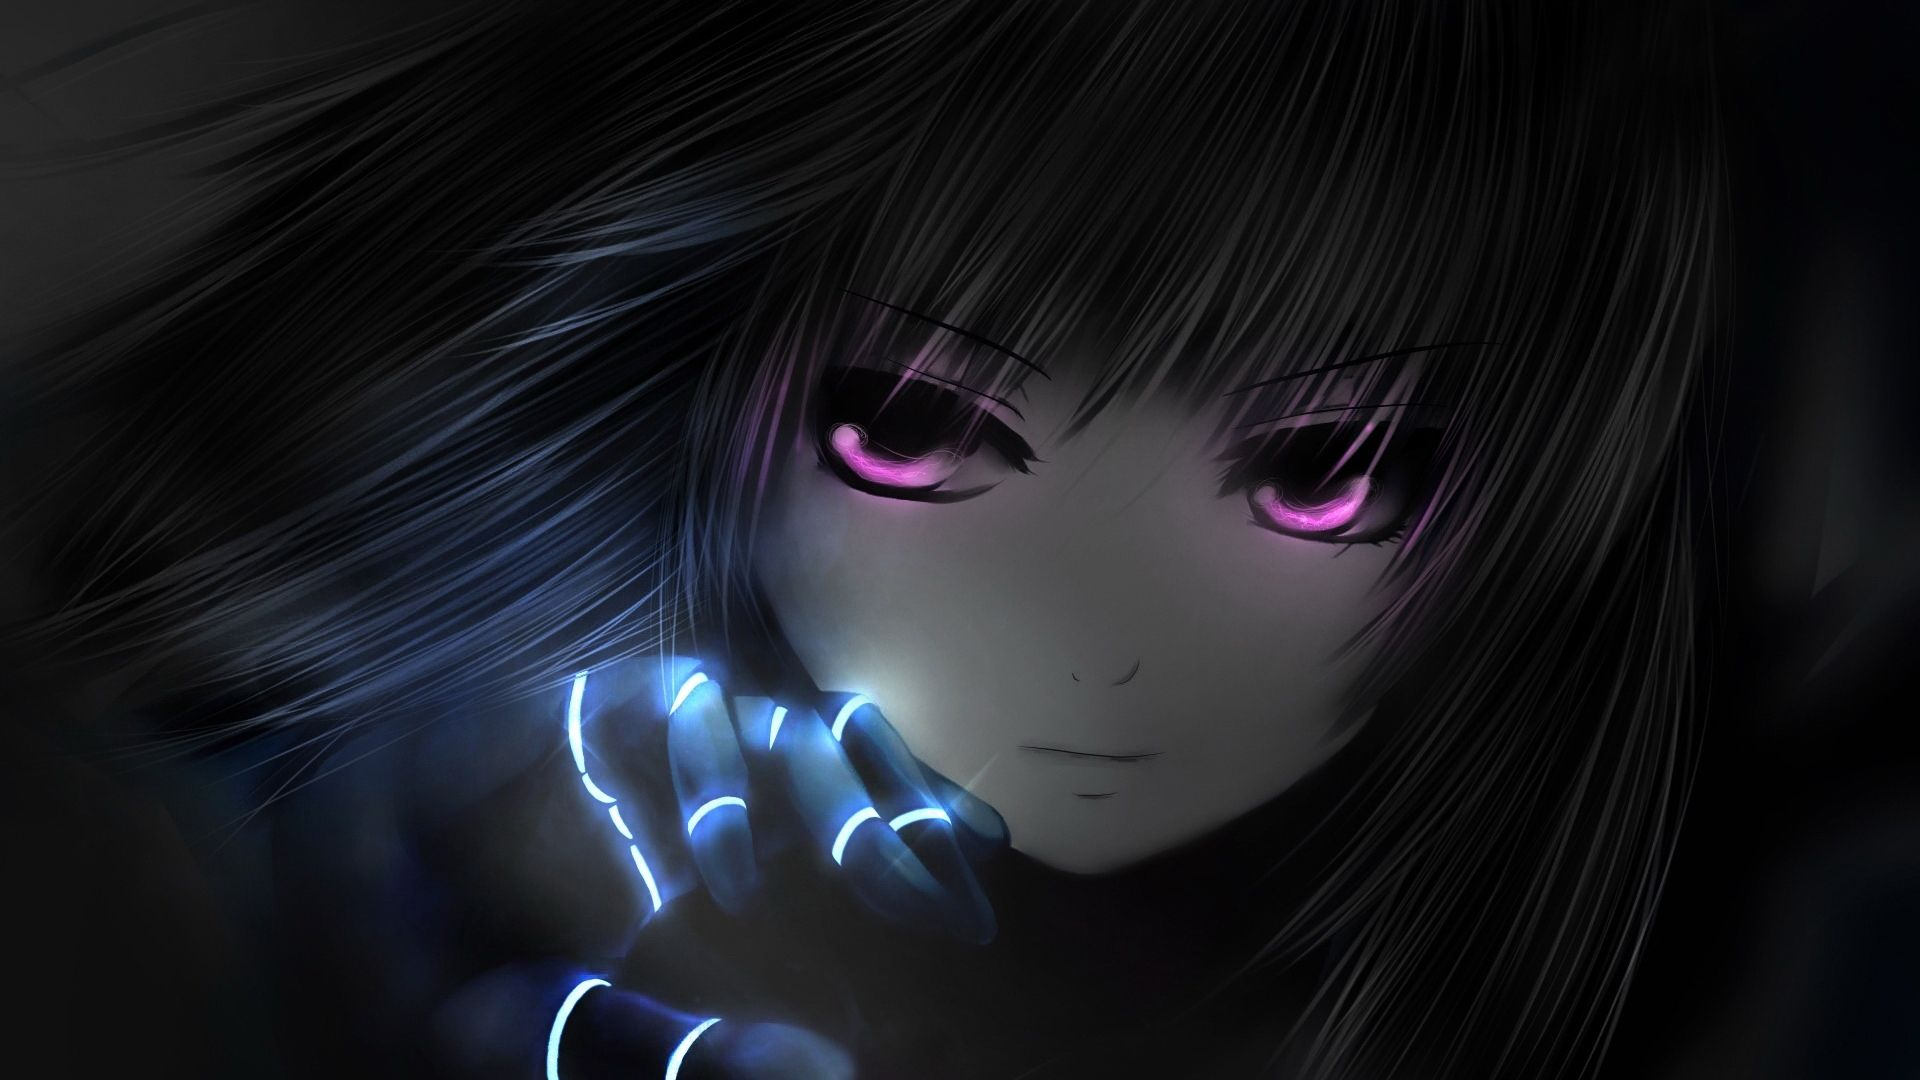 dark anime wallpaper 1920x1080 hd images 3 hd wallpapers | Надо